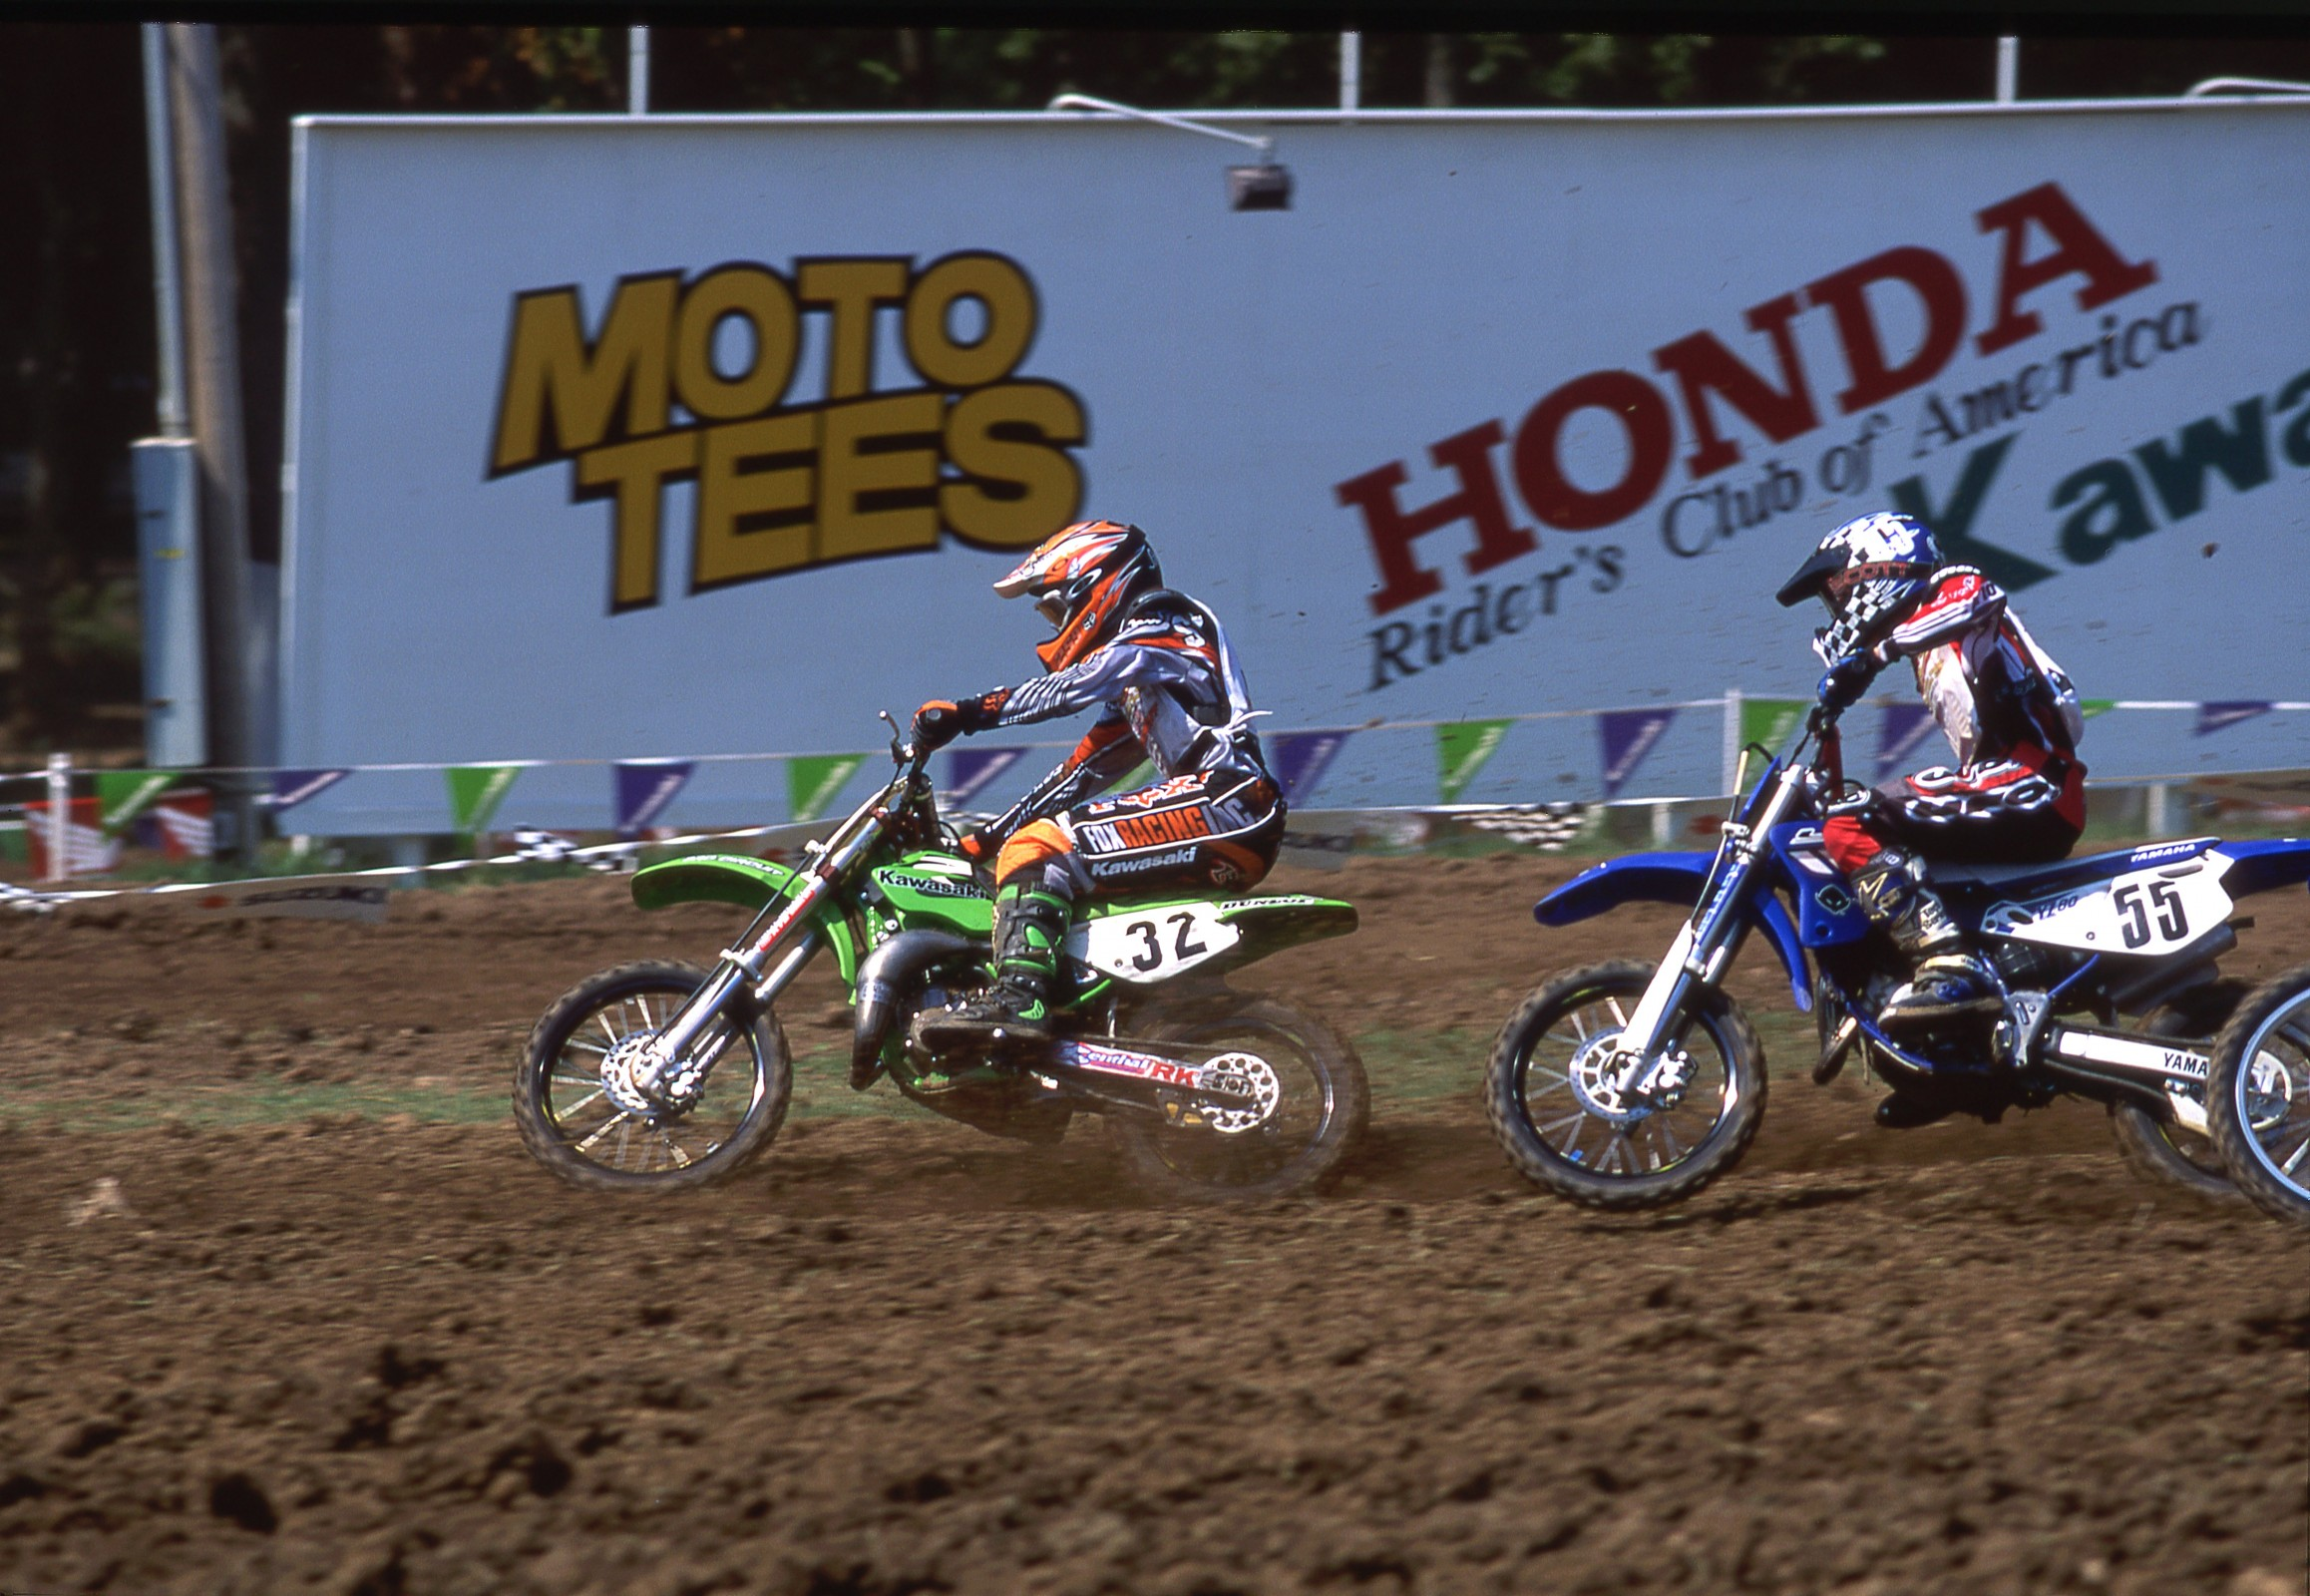 Many wondered if James Stewart could have won the 125 classes on his Team Green Kawasaki Supermini.